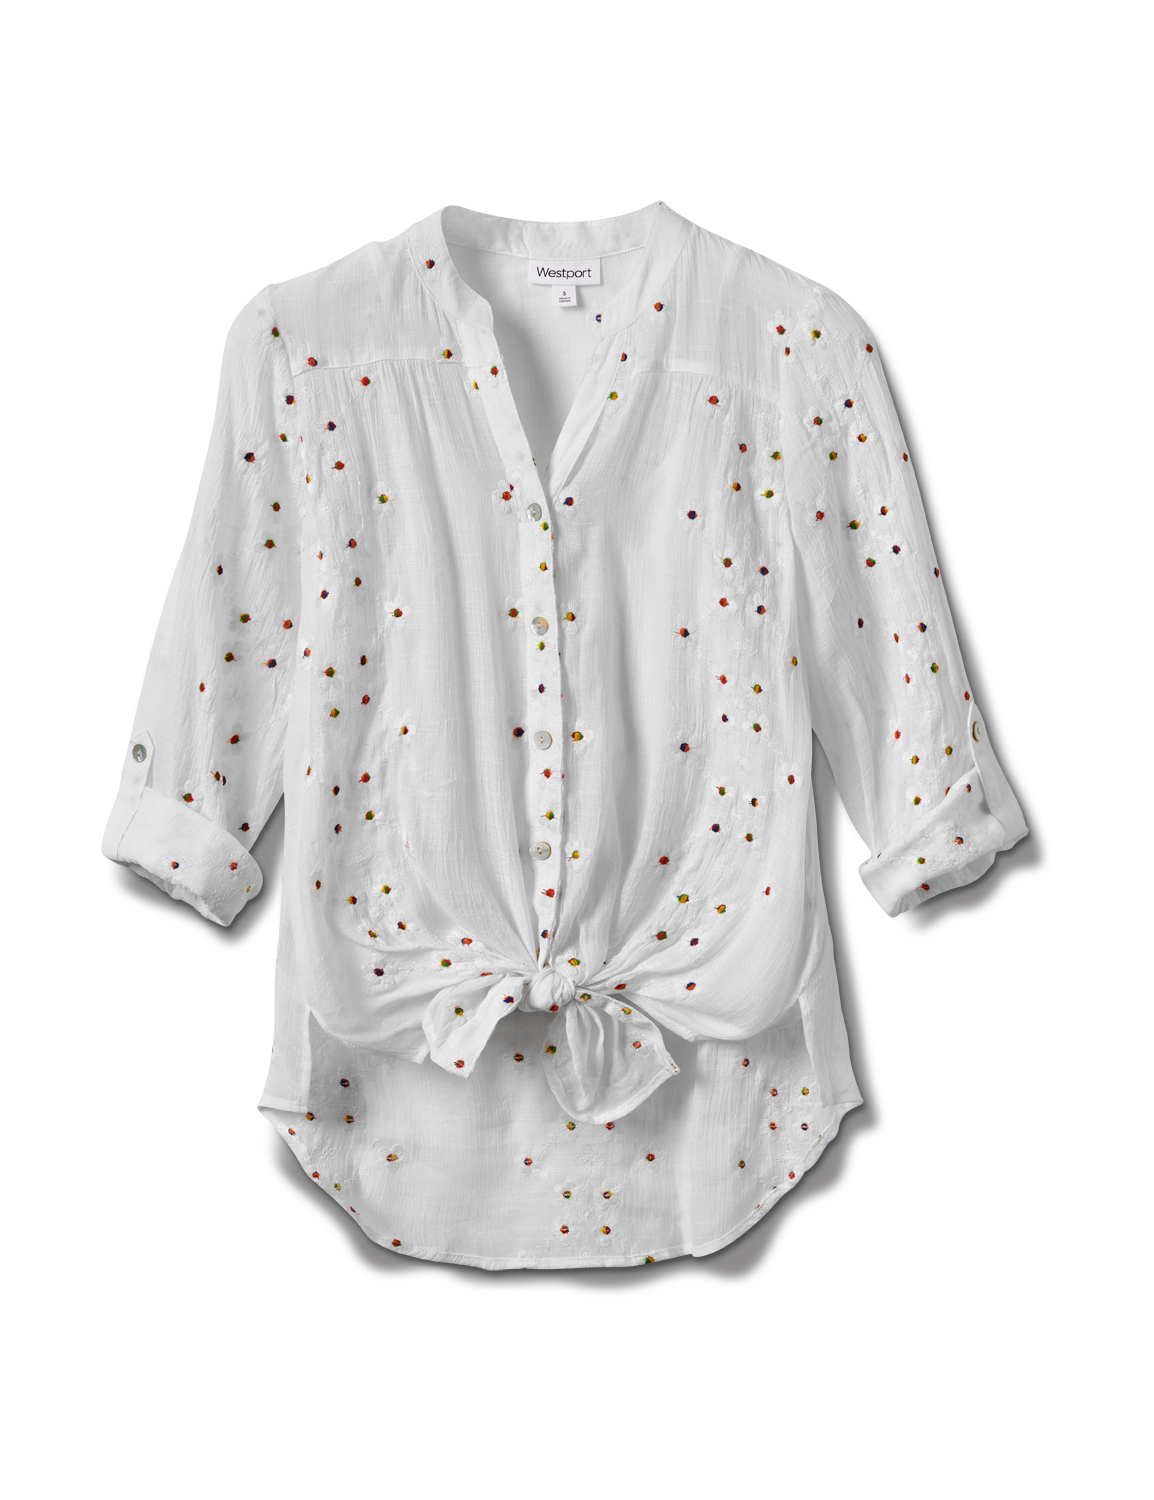 Westport Embroidered Button Front Shirt - Misses -White - Front